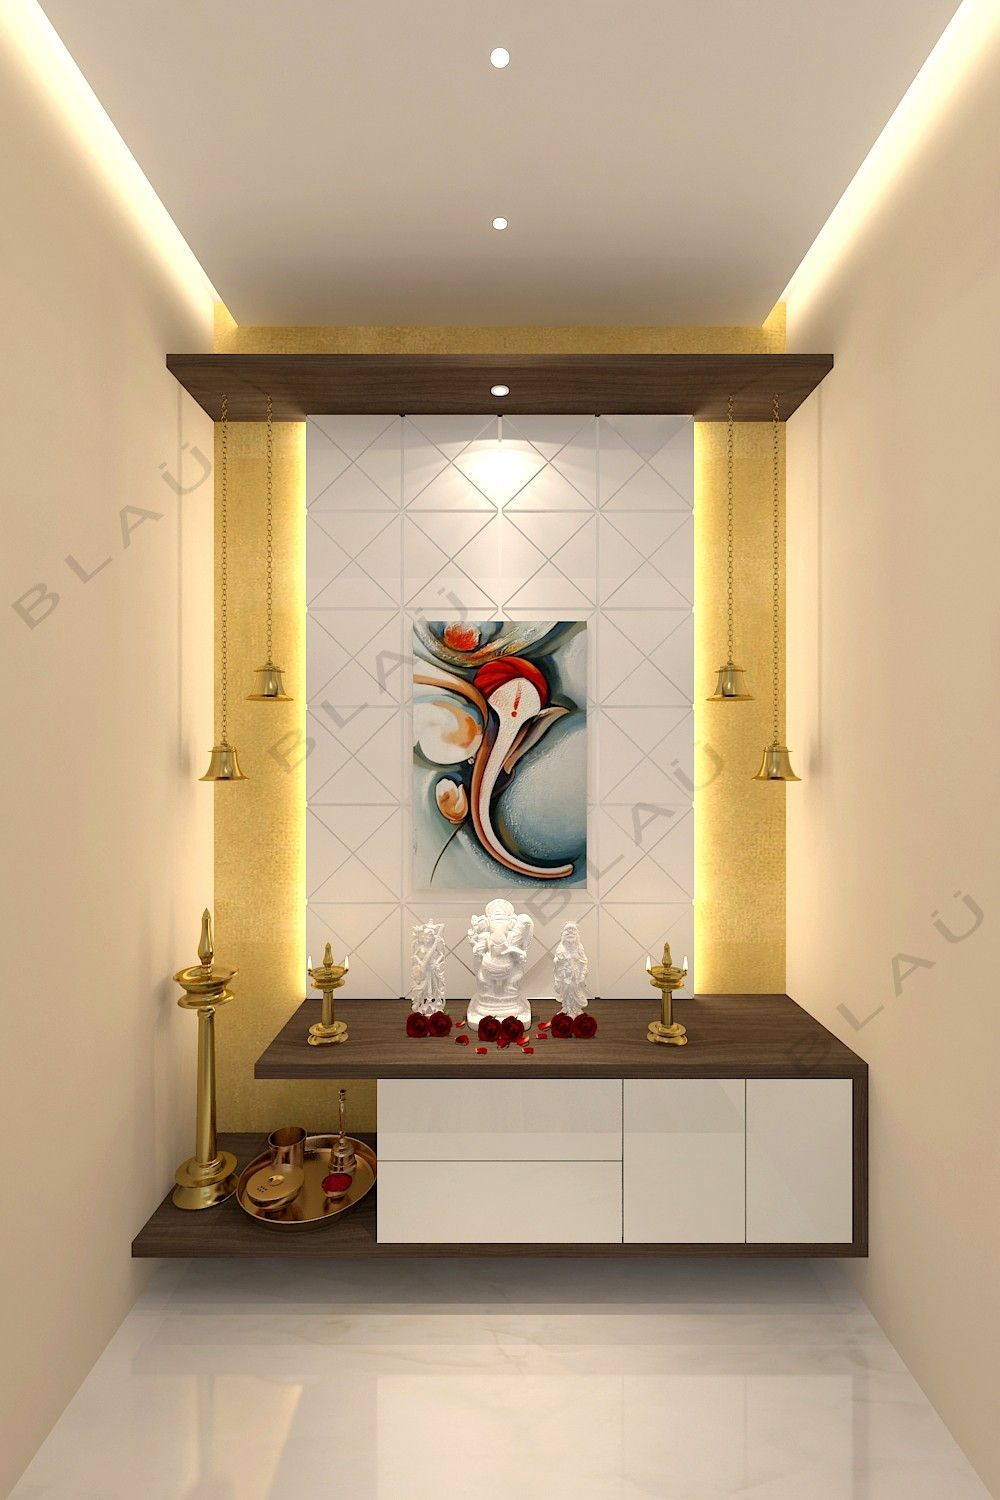 Puja Zimmer Puja Zimmer In 2020 Pooja Room Door Design Room